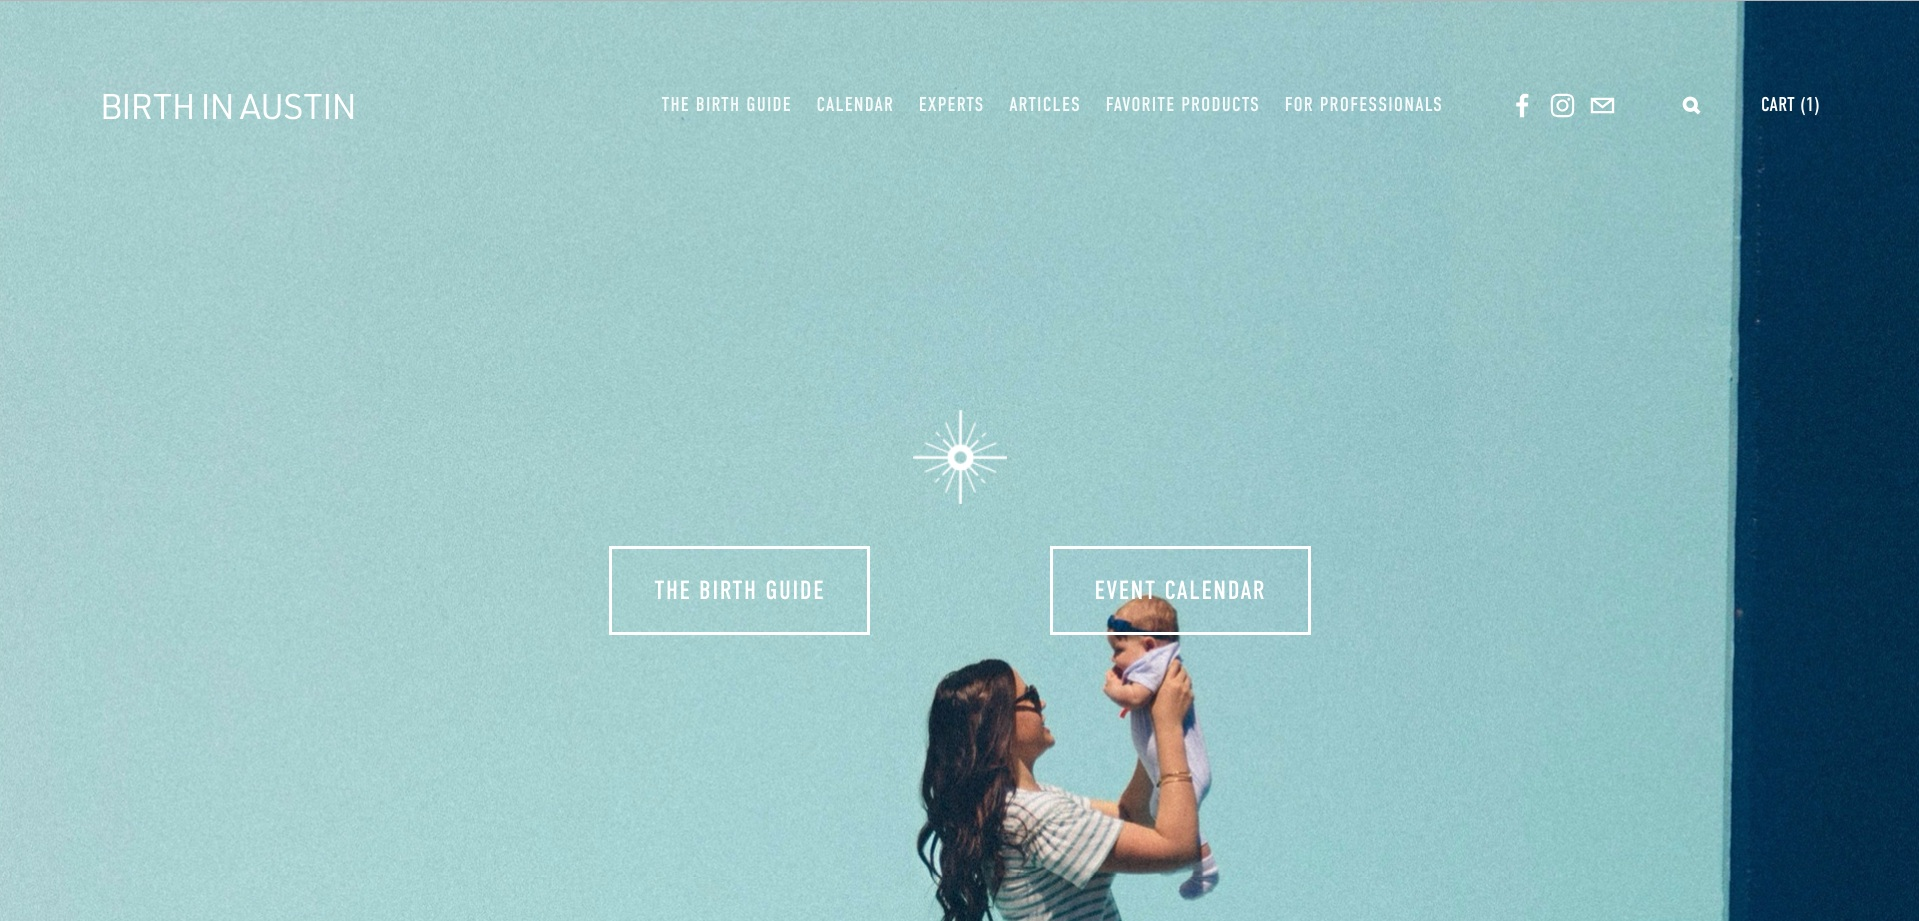 Birth in Austin: Professional Directory